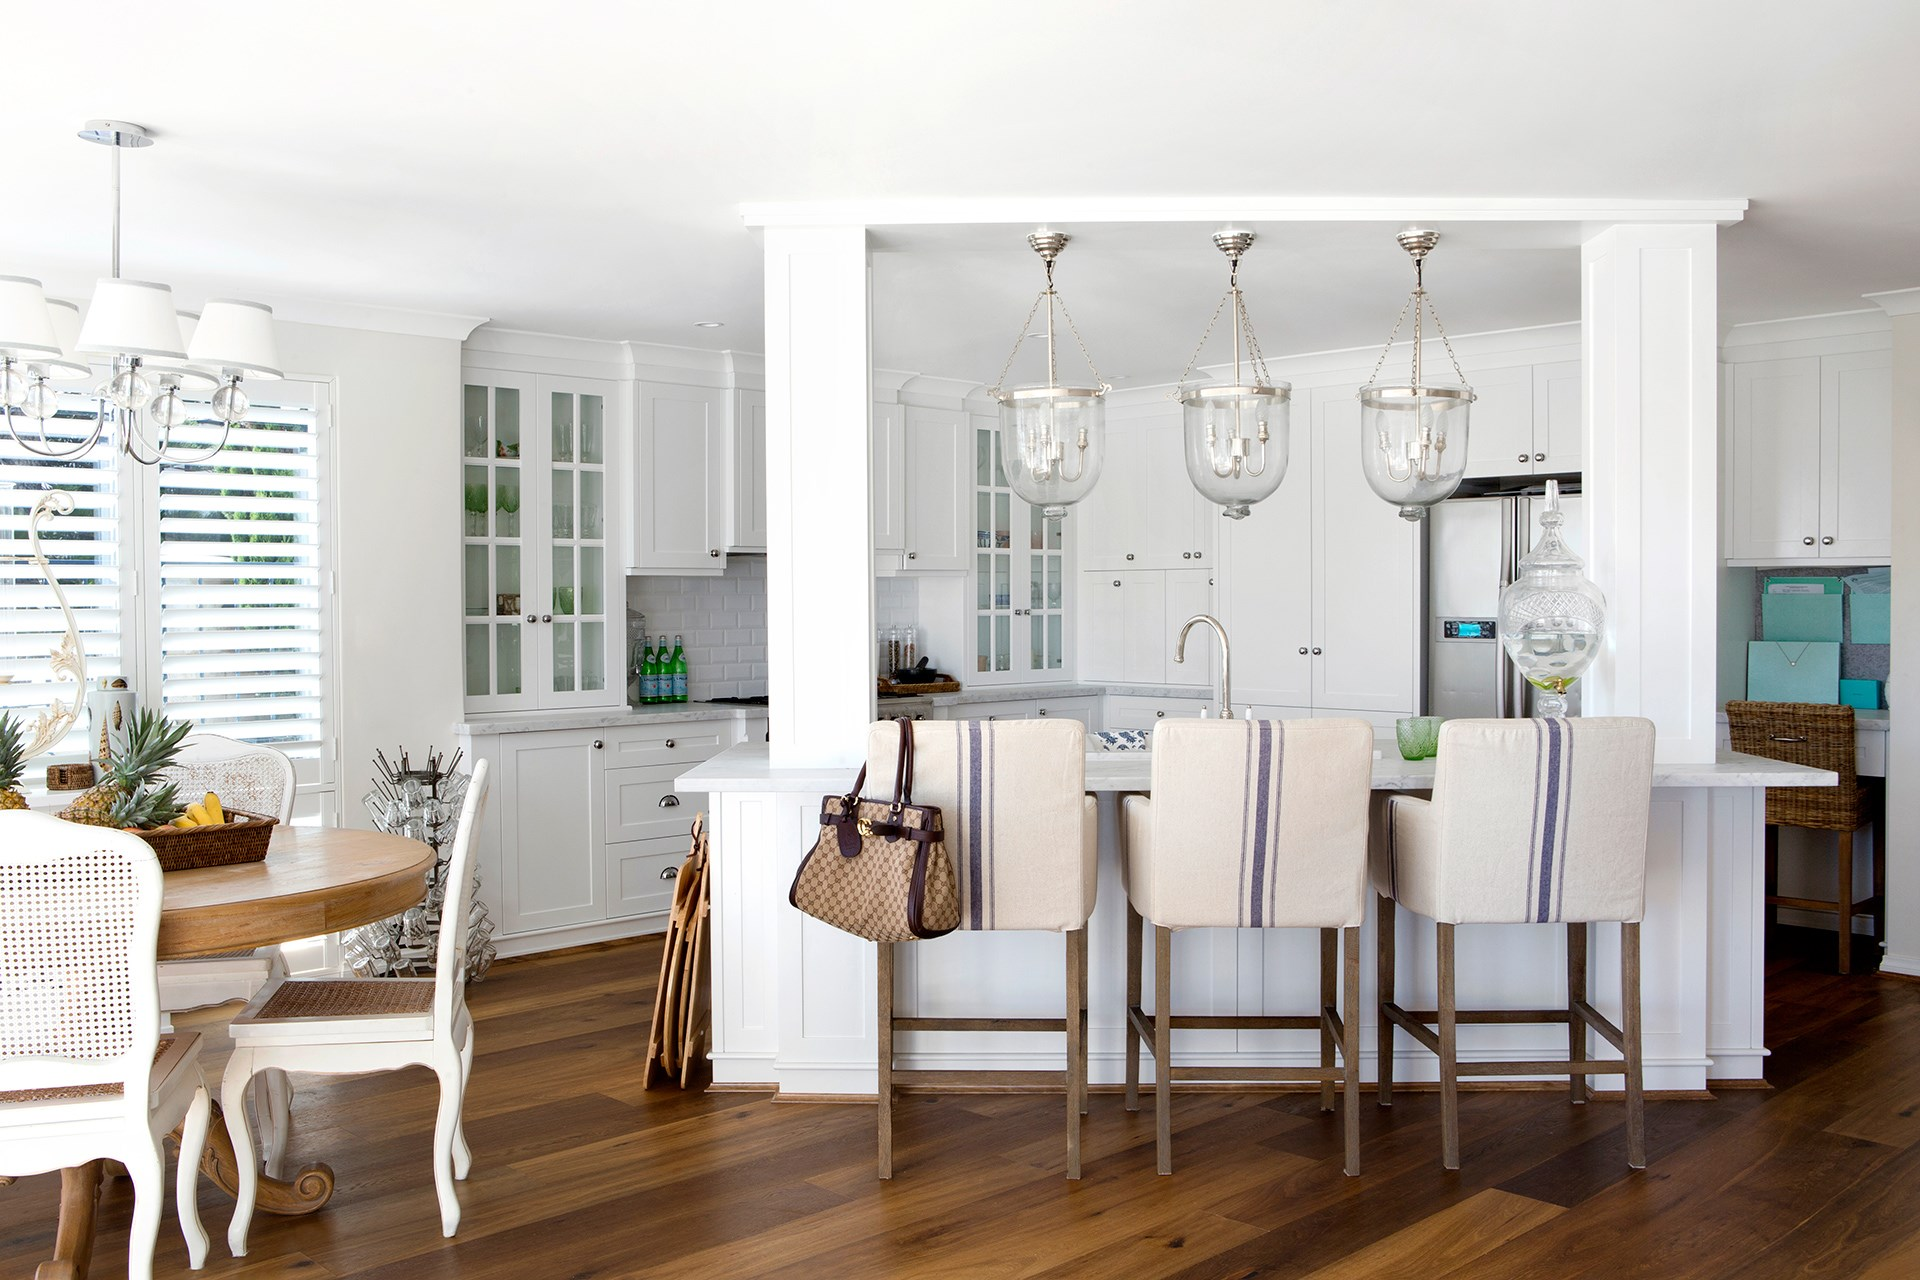 """There's casual beach style, and then there's the more sophisticated Hamptons coastal style. This Perth home is so close to the beach, its owners can almost kayak from the front yard. Homeowner [Natalee Bowen](http://www.indahisland.com/?utm_campaign=supplier/